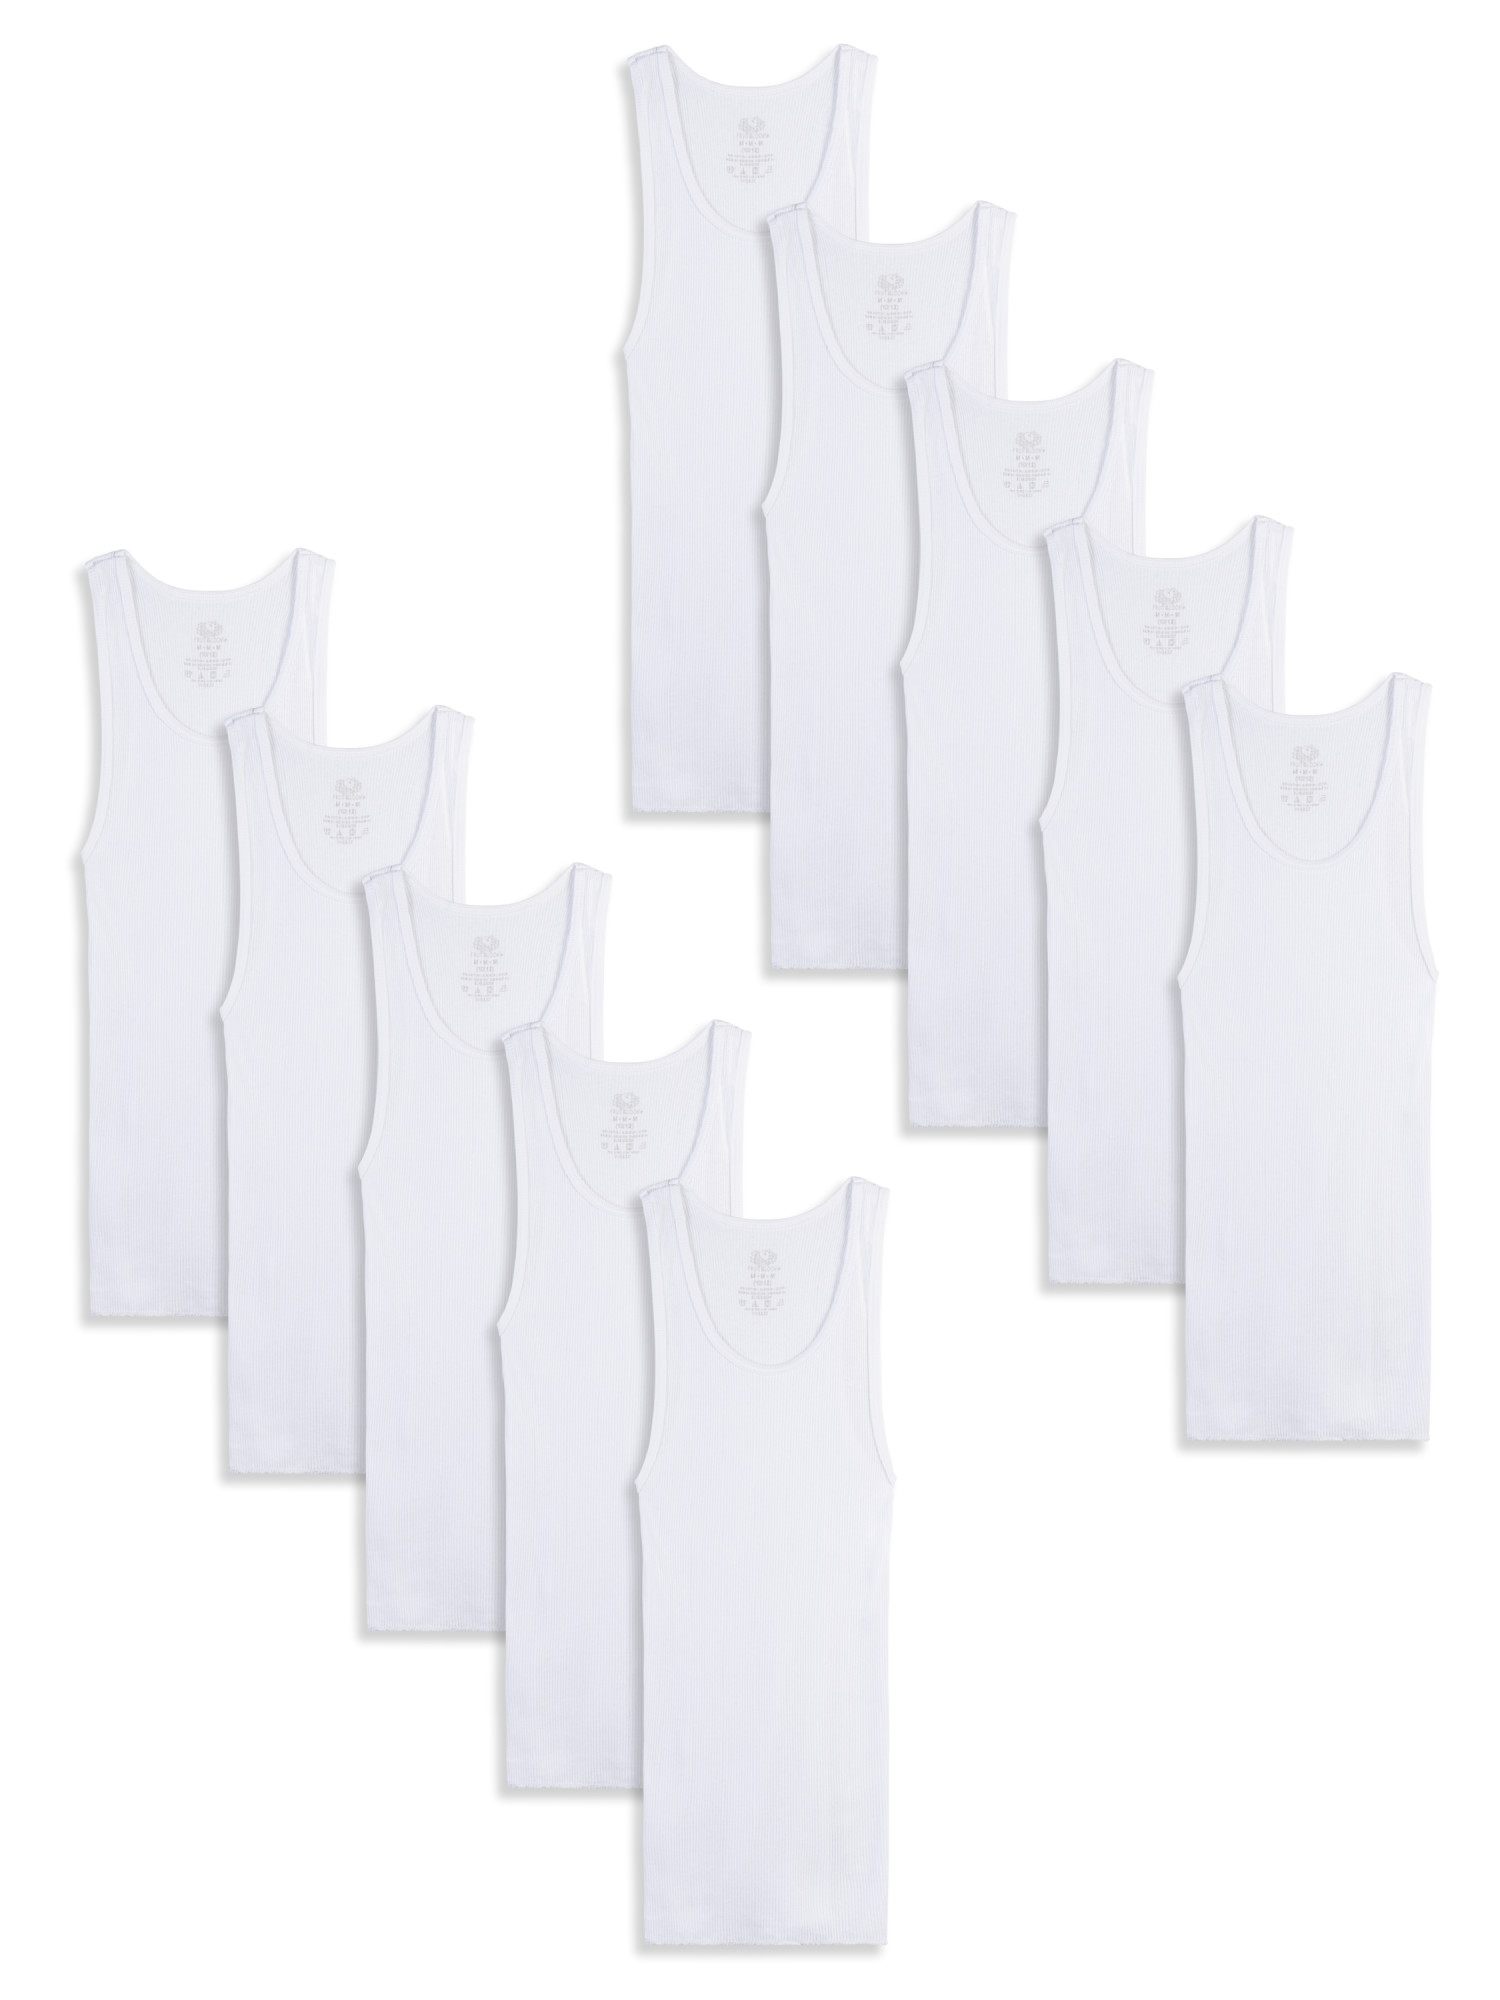 White Tank A-Shirts, 10 Pack (Little Boys & Big Boys)